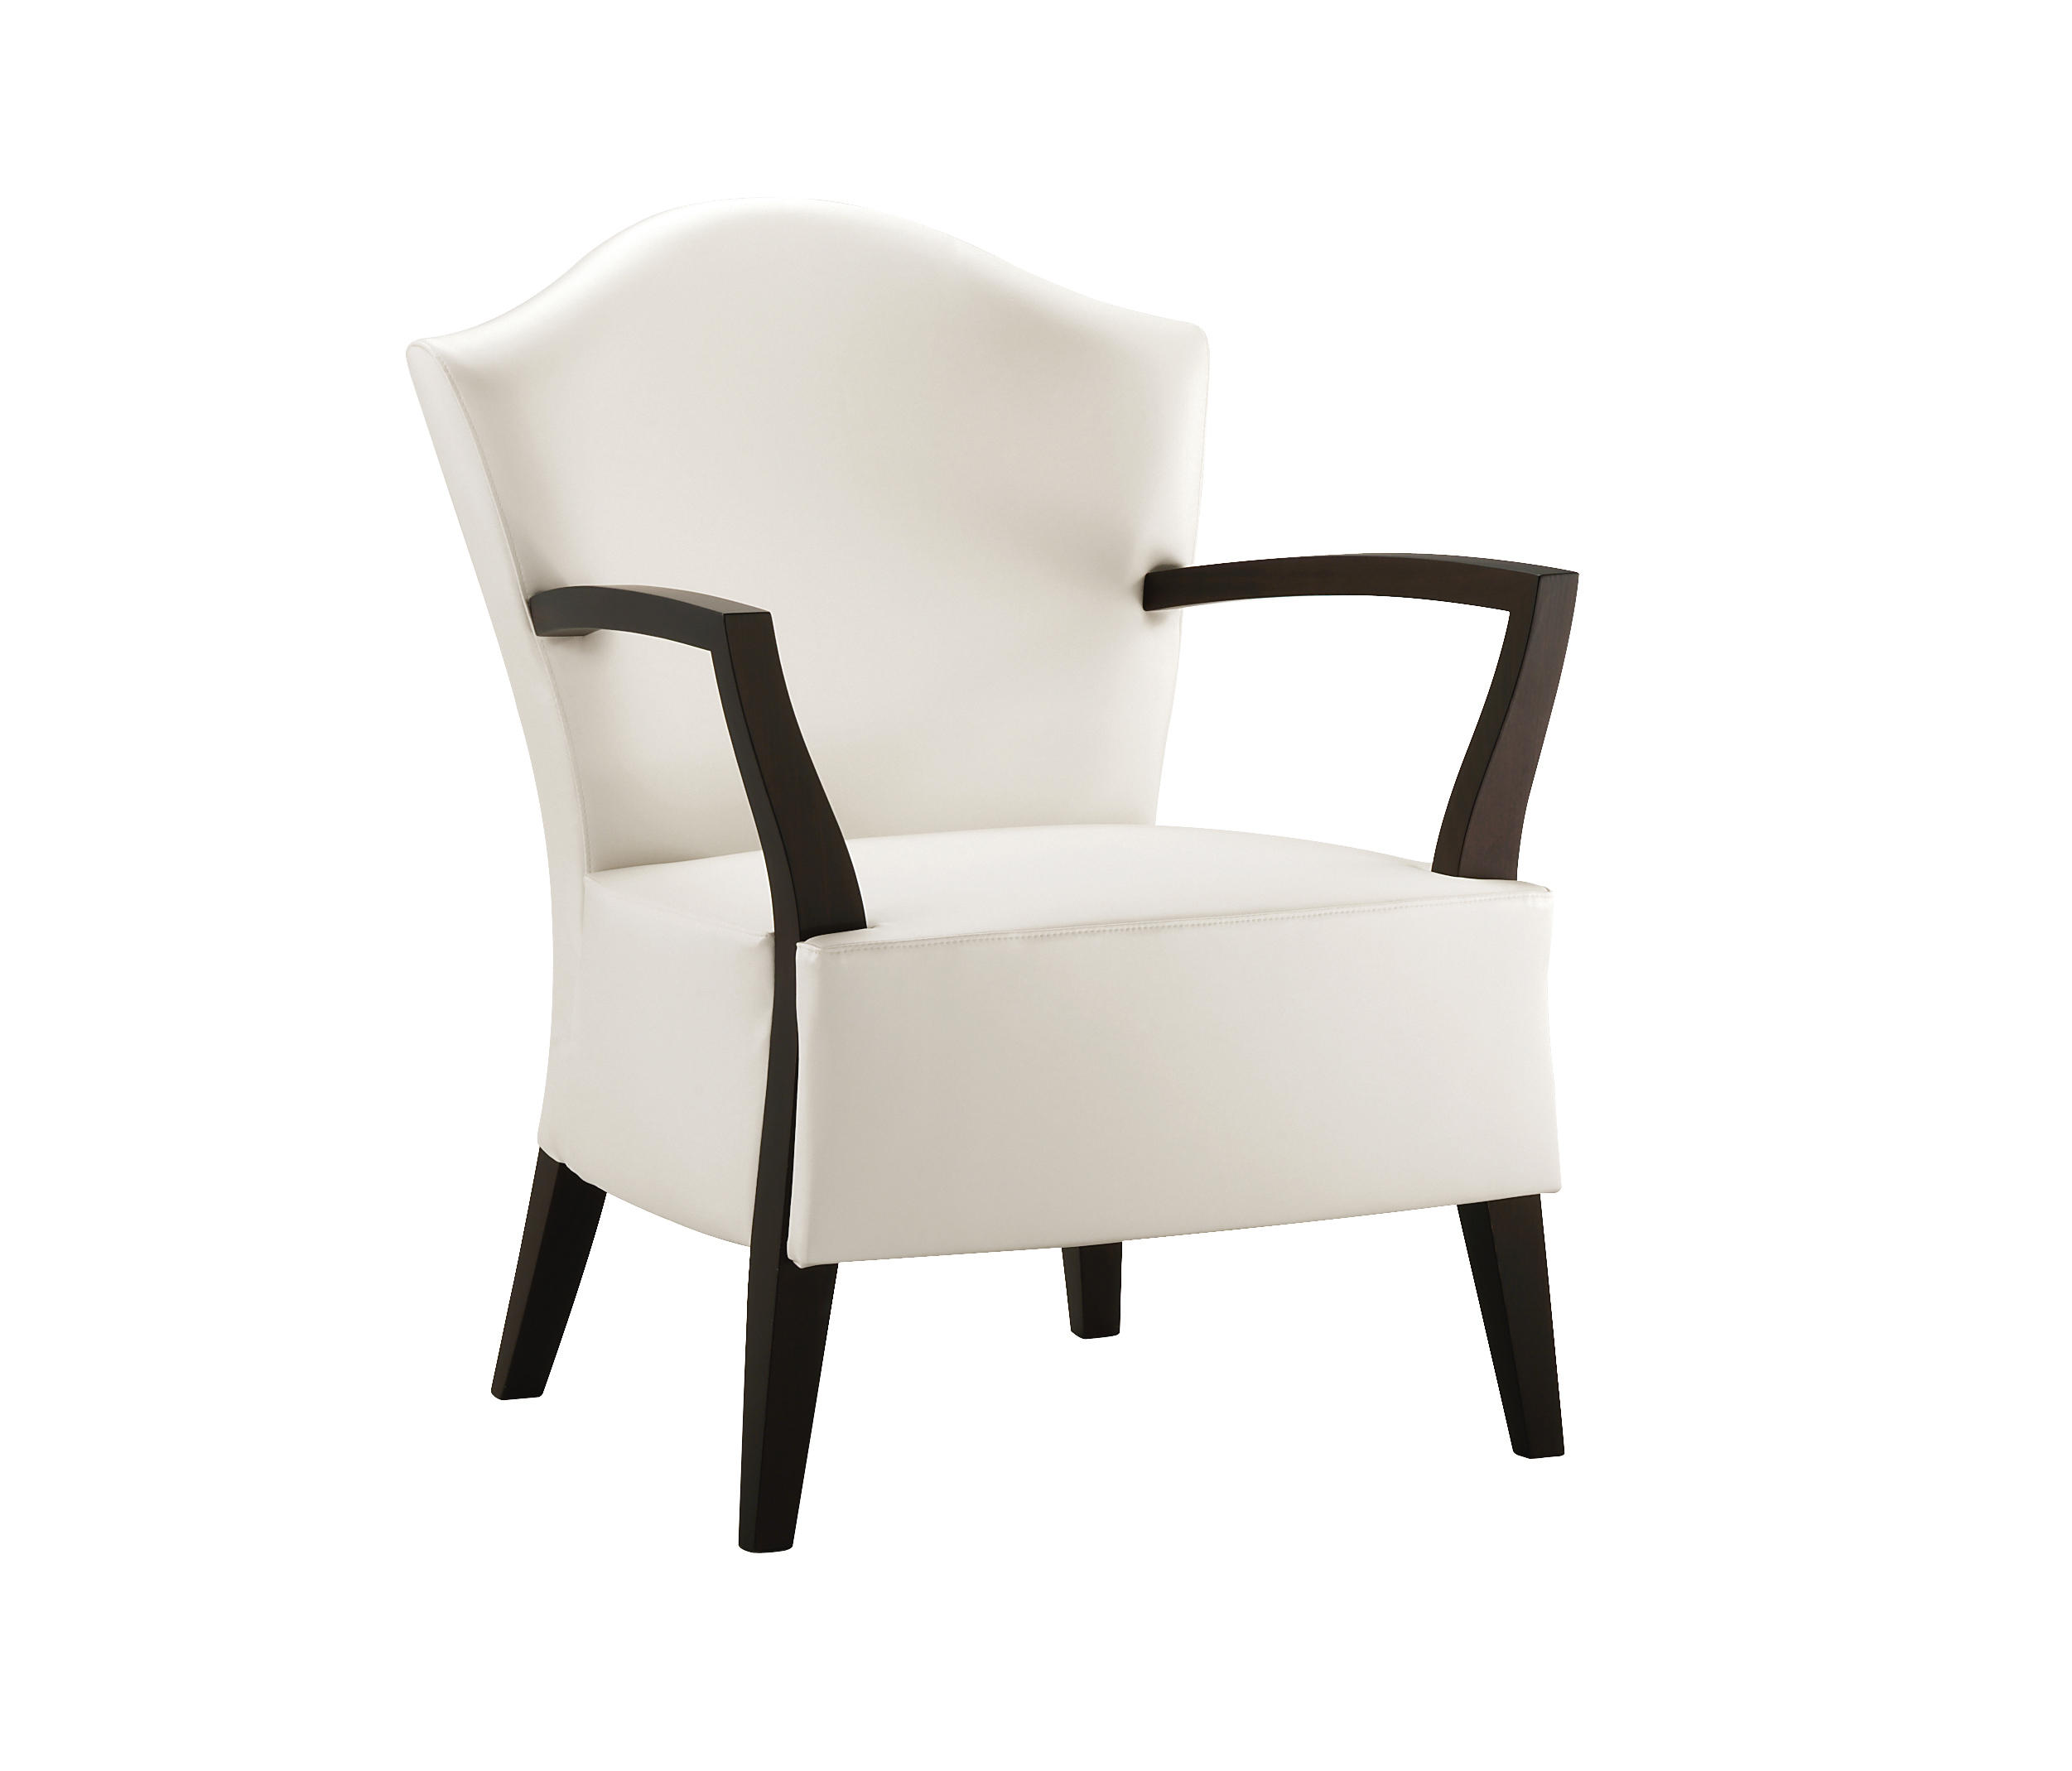 King Chair Sessel King 1250 Po Sessel Von Cizeta L Abbate Architonic